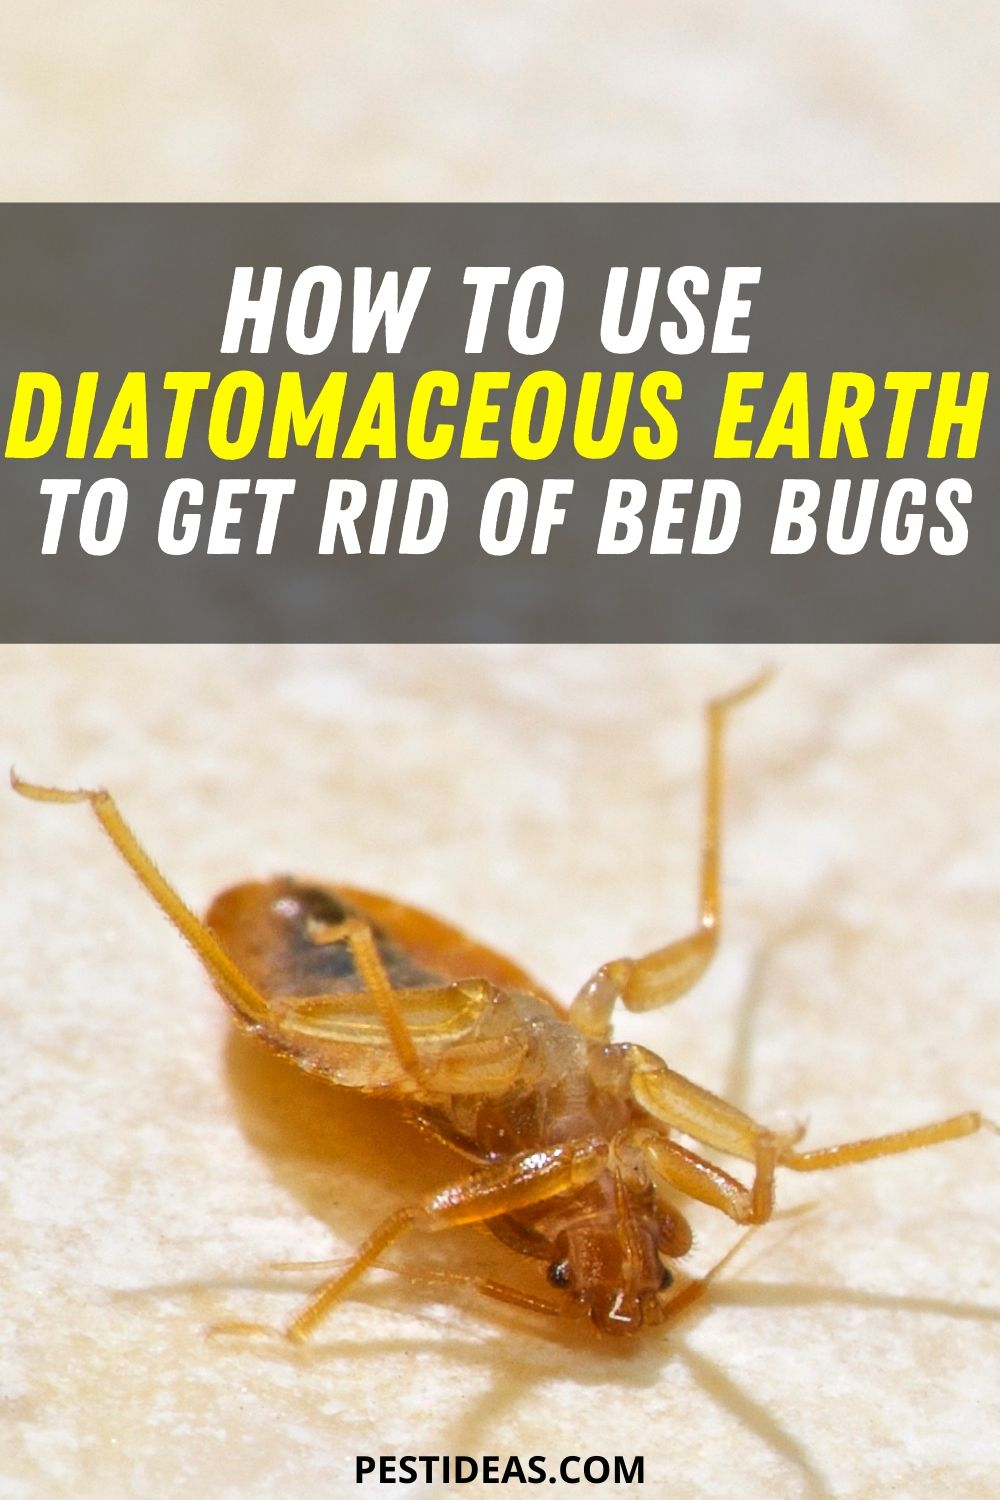 how to use diatomaceous earth to get rid of bed bugs